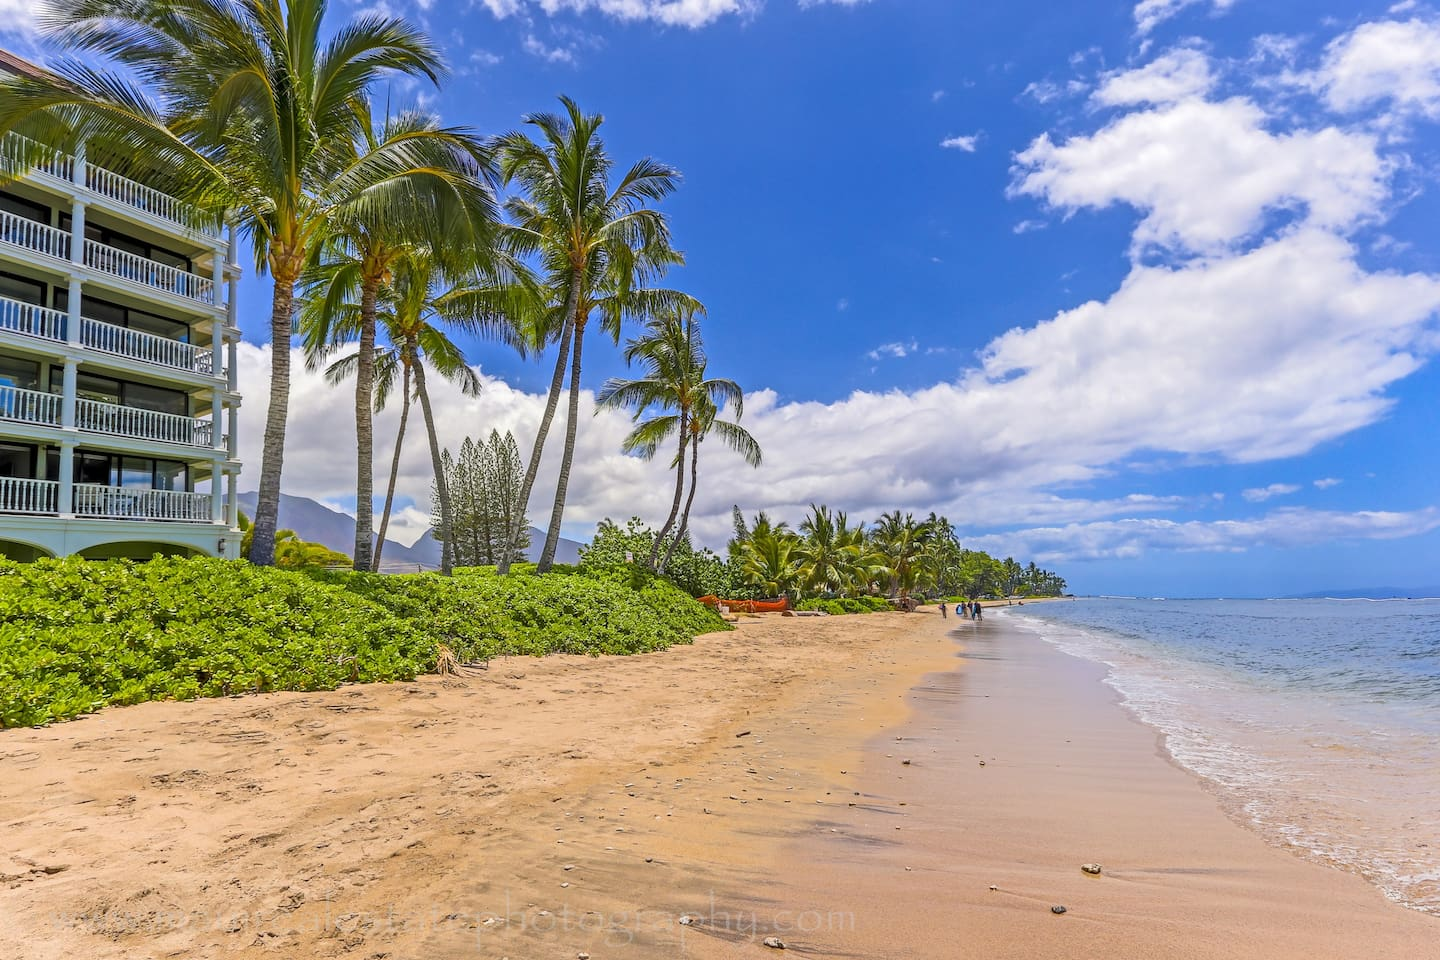 Beachfront Lahaina Resort - Boutique hotel condo close to all the fun and adventures of Lahaina Town - best weather on Maui!  Stroll this beautiful 1/2 mile beach in to Lahaina Town.